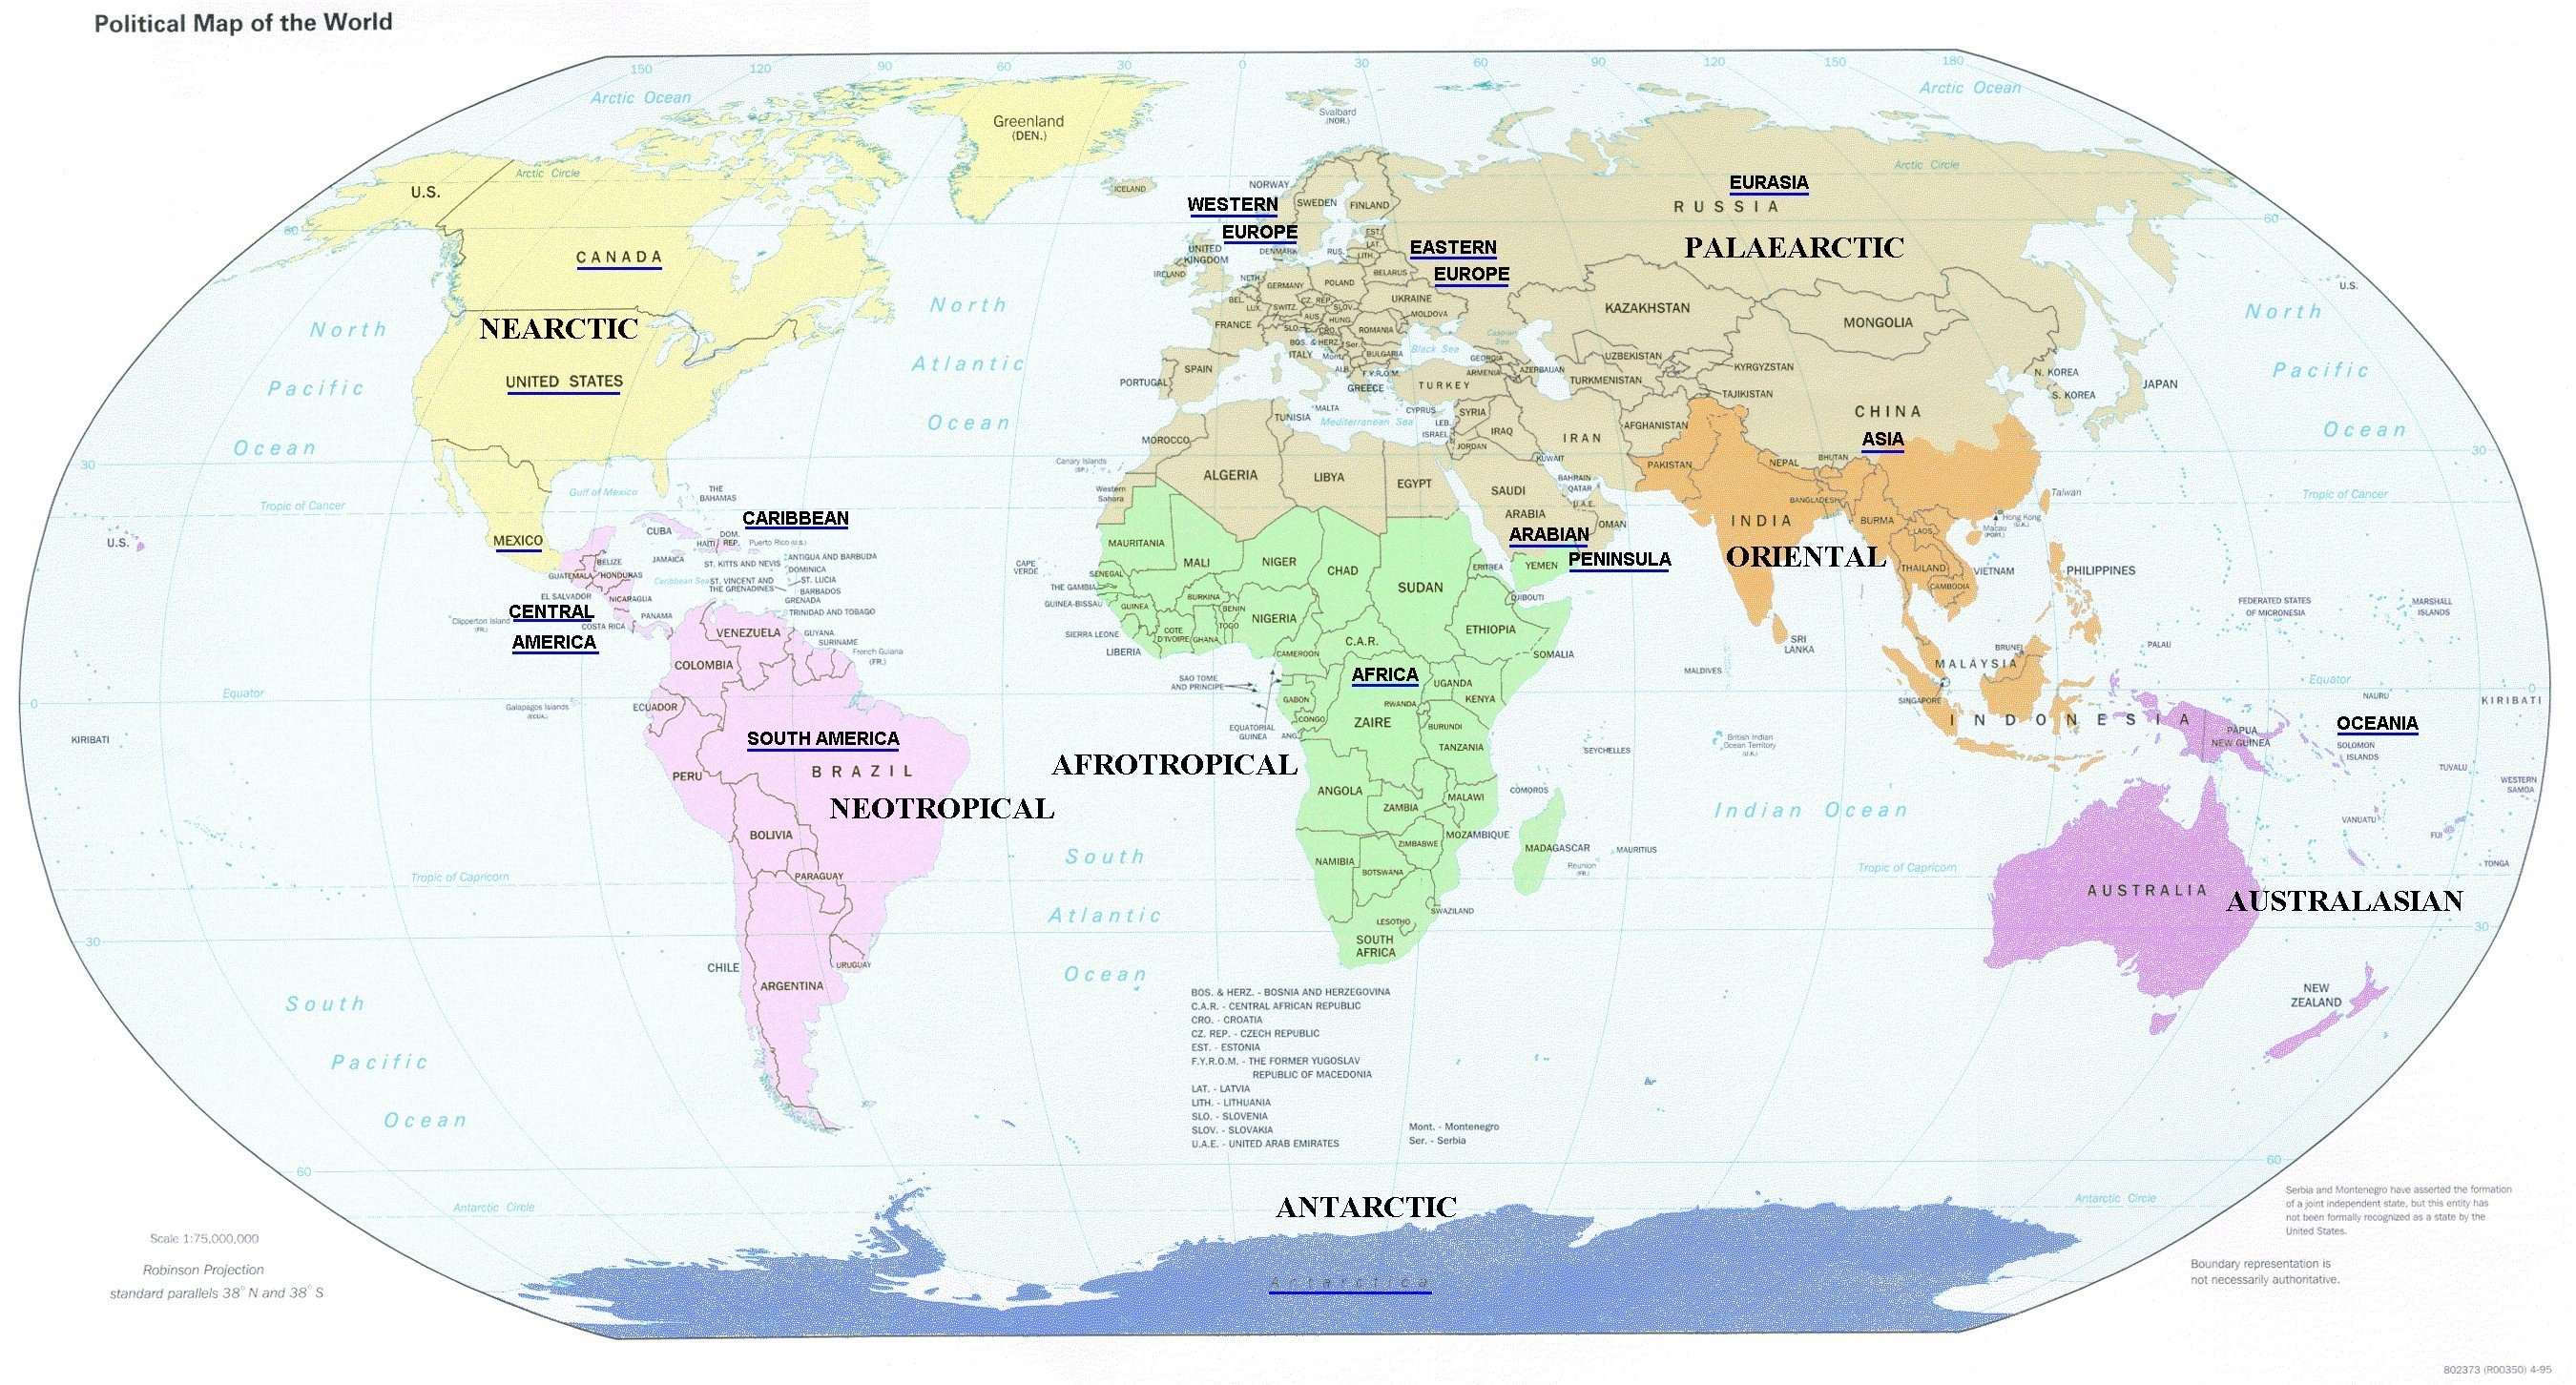 Res: 2700x1452, Blank Political World Map High Resolution Fresh World Map Wallpapers High  Resolution Wallpaper Cave With Hd New Hi Res World Map Wallpaper Best Hi  Res World ...